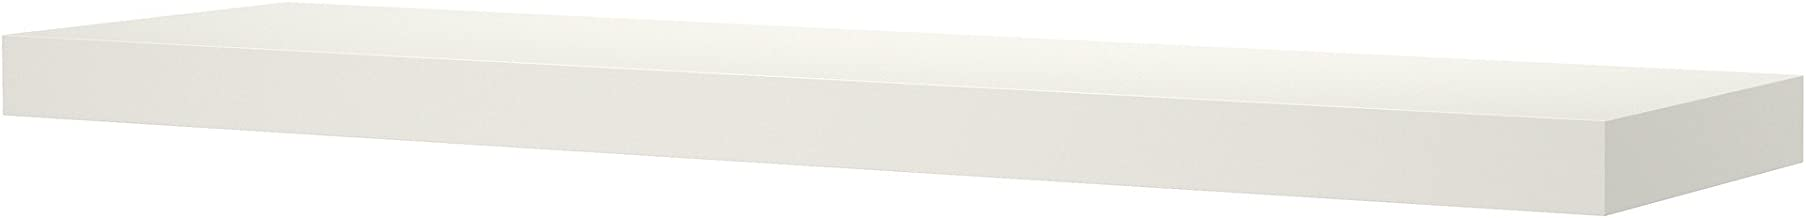 Torix floating Shelf white Size : 60 Cm X 20 Cm X 4 Cm Wall Decor Shelves High Gloss wooden stand wall